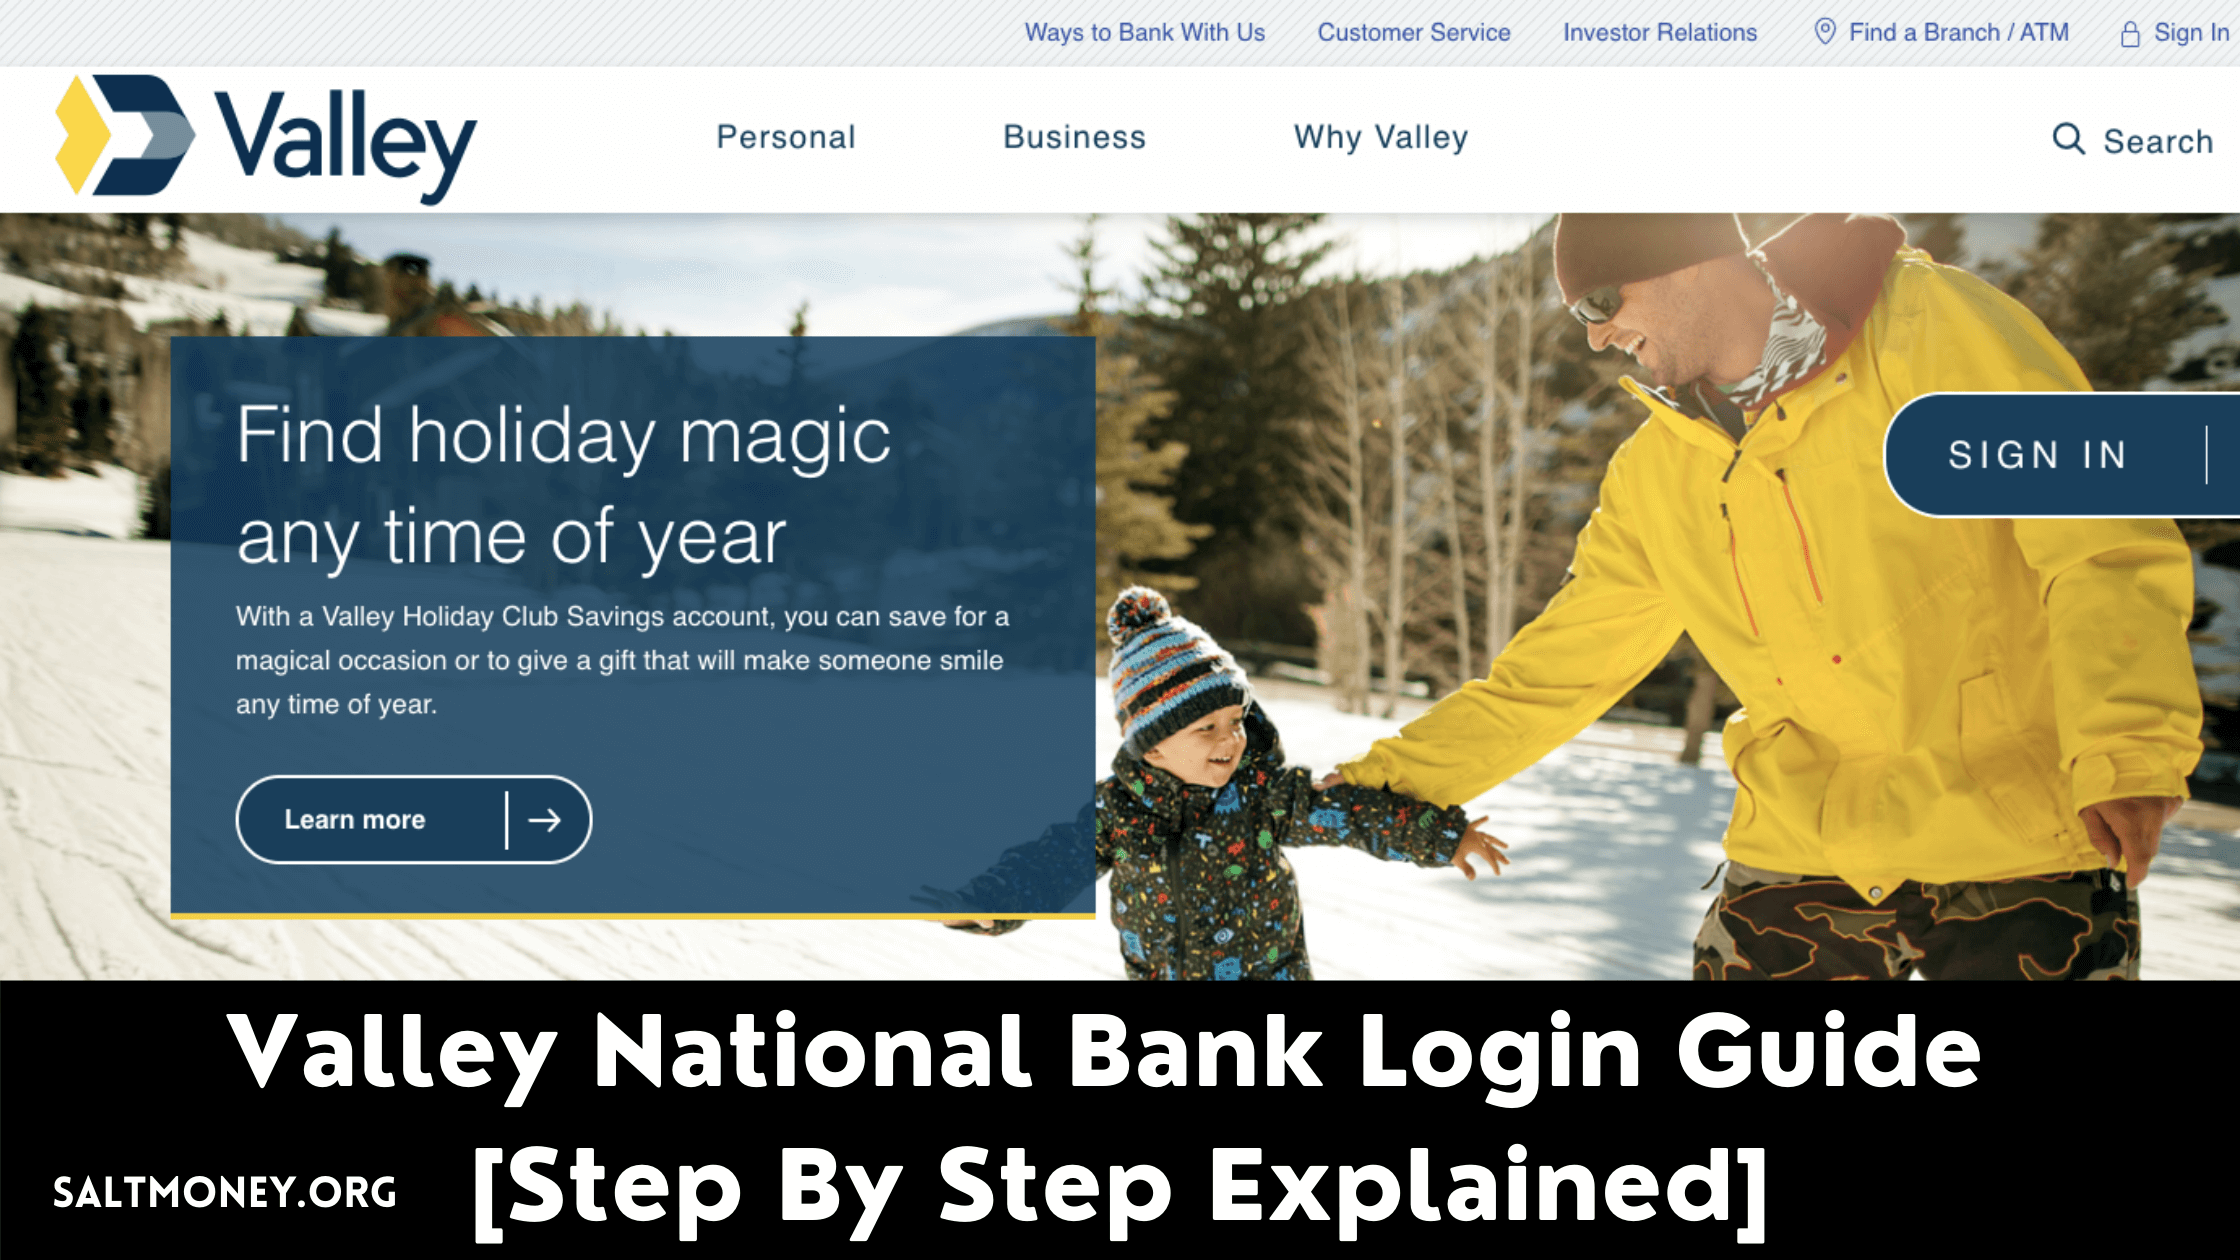 Valley National Bank Login Guide